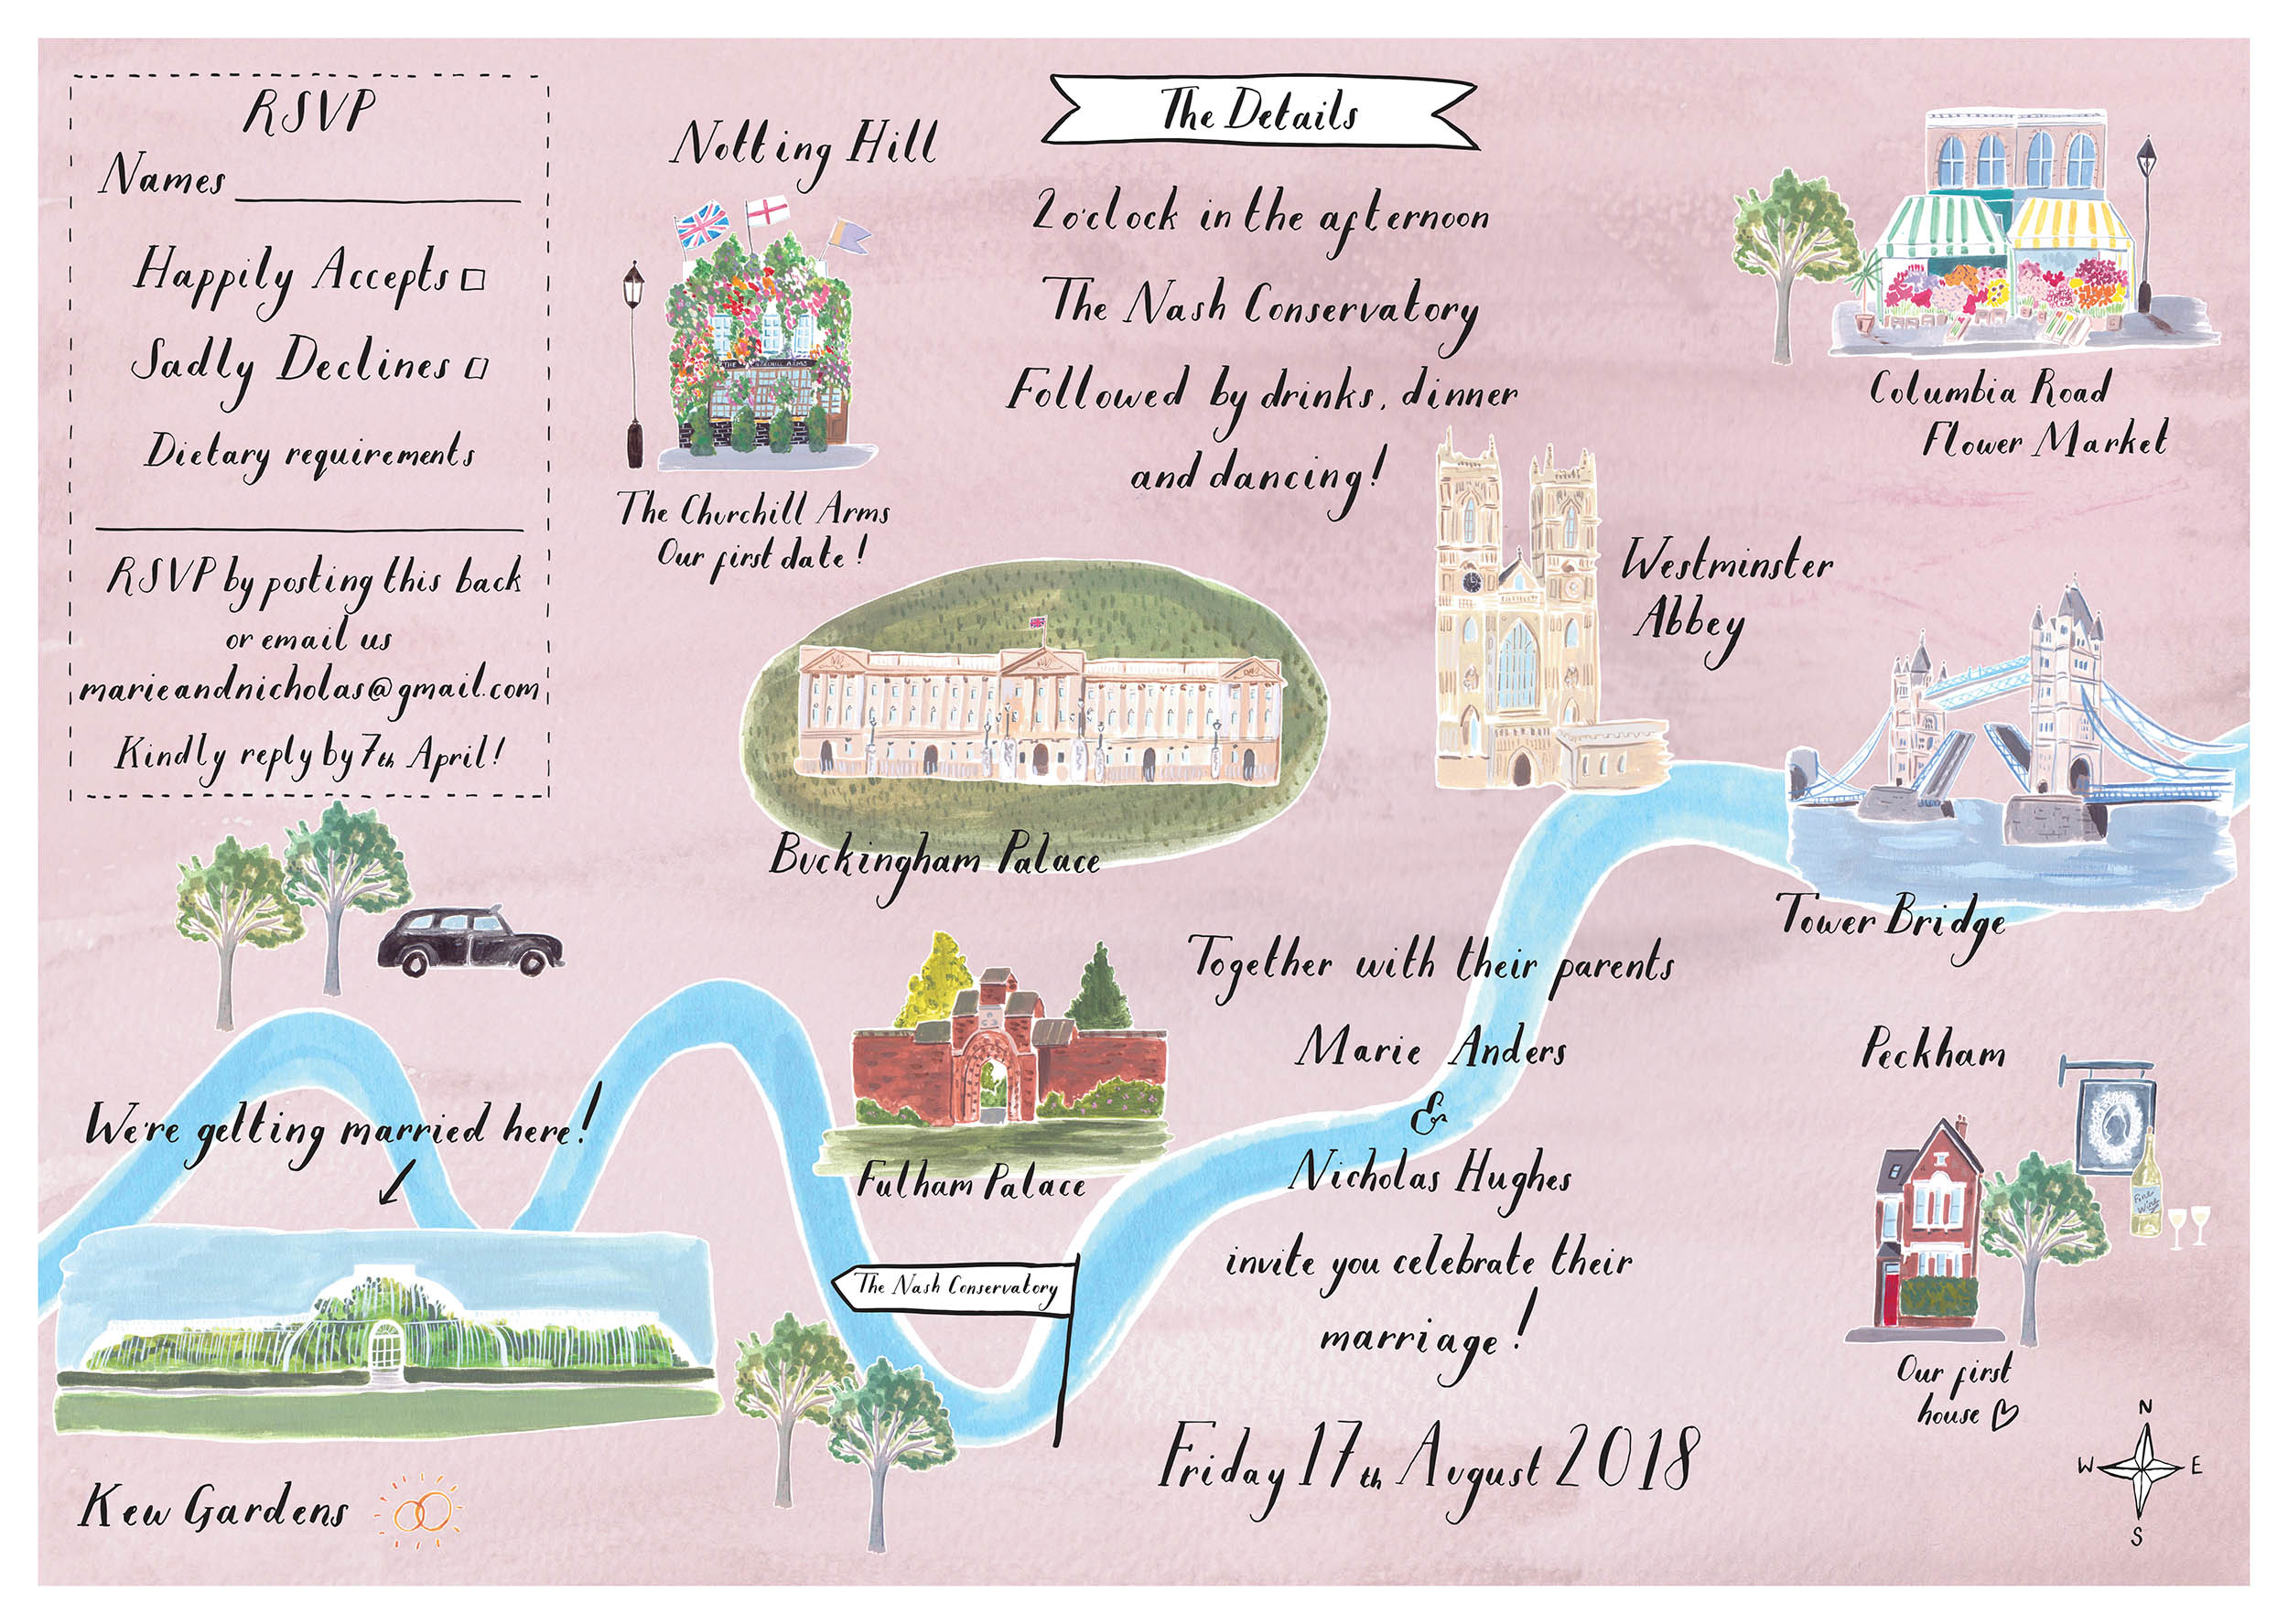 Marie and Nicholas - Bespoke Illustrated A2 Invitation